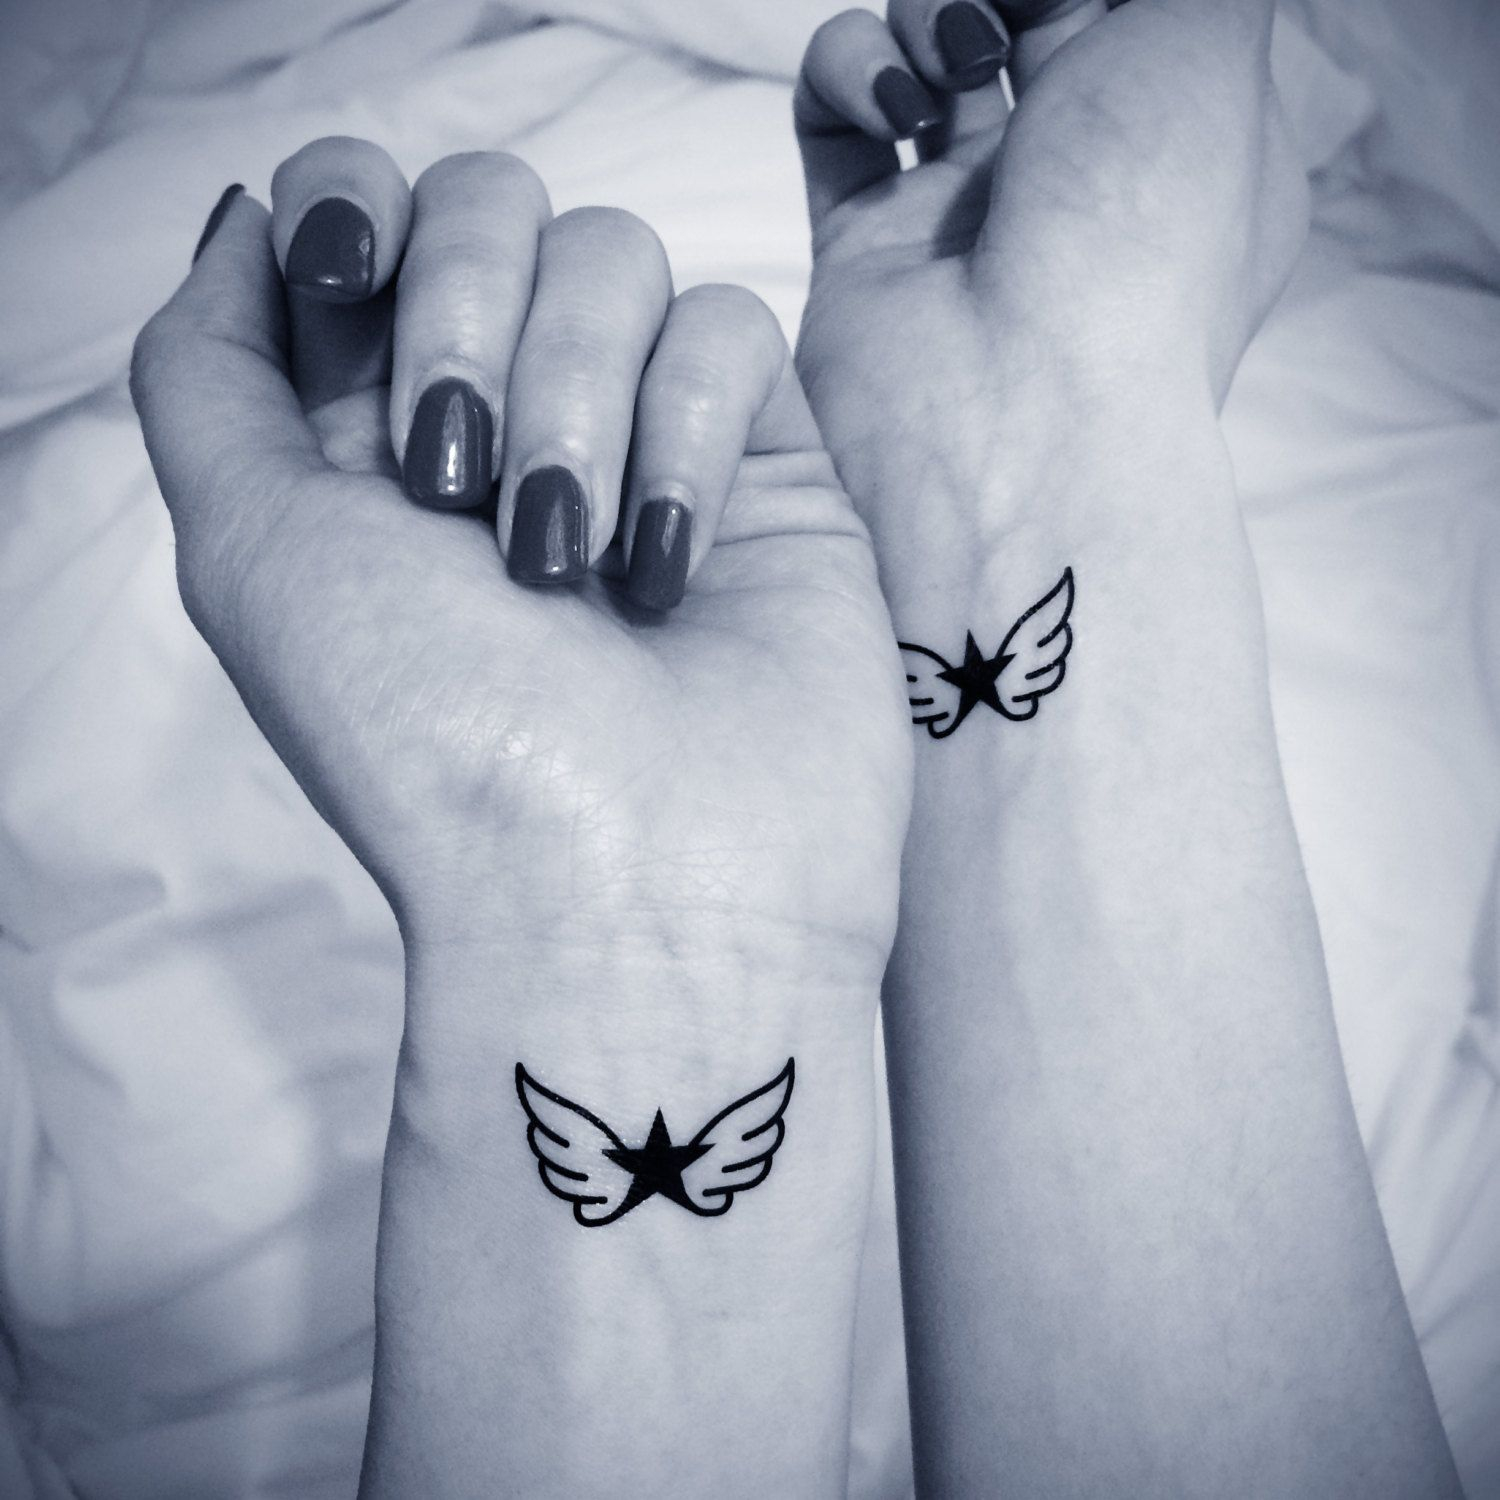 Wing tattoos on wrist by Bonnie Yaeger on First Tattoo